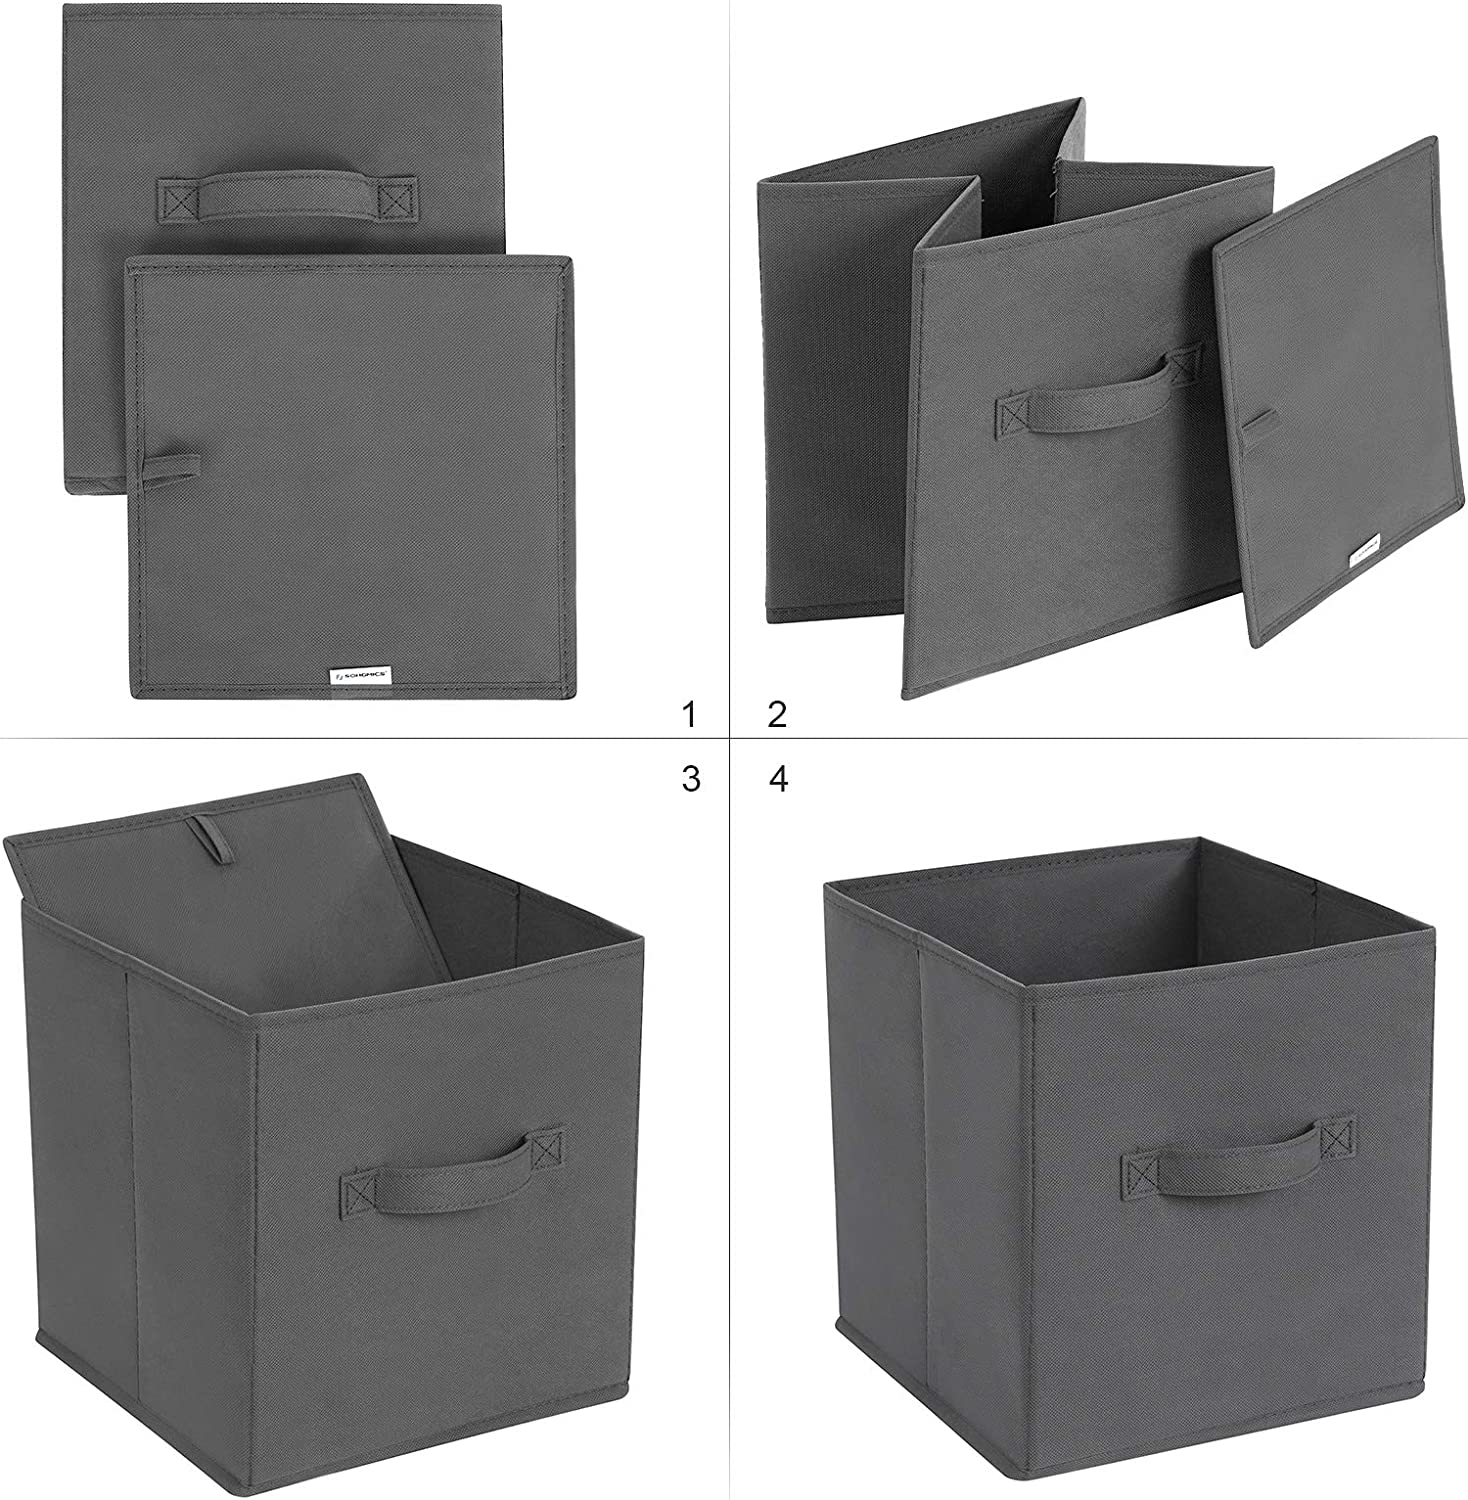 Non-Woven Fabric Storage Cubes Foldable Toy Clothes Organizer Bins 3 Black 3 Beige UROB26HM SONGMICS Set of 6 Storage Boxes